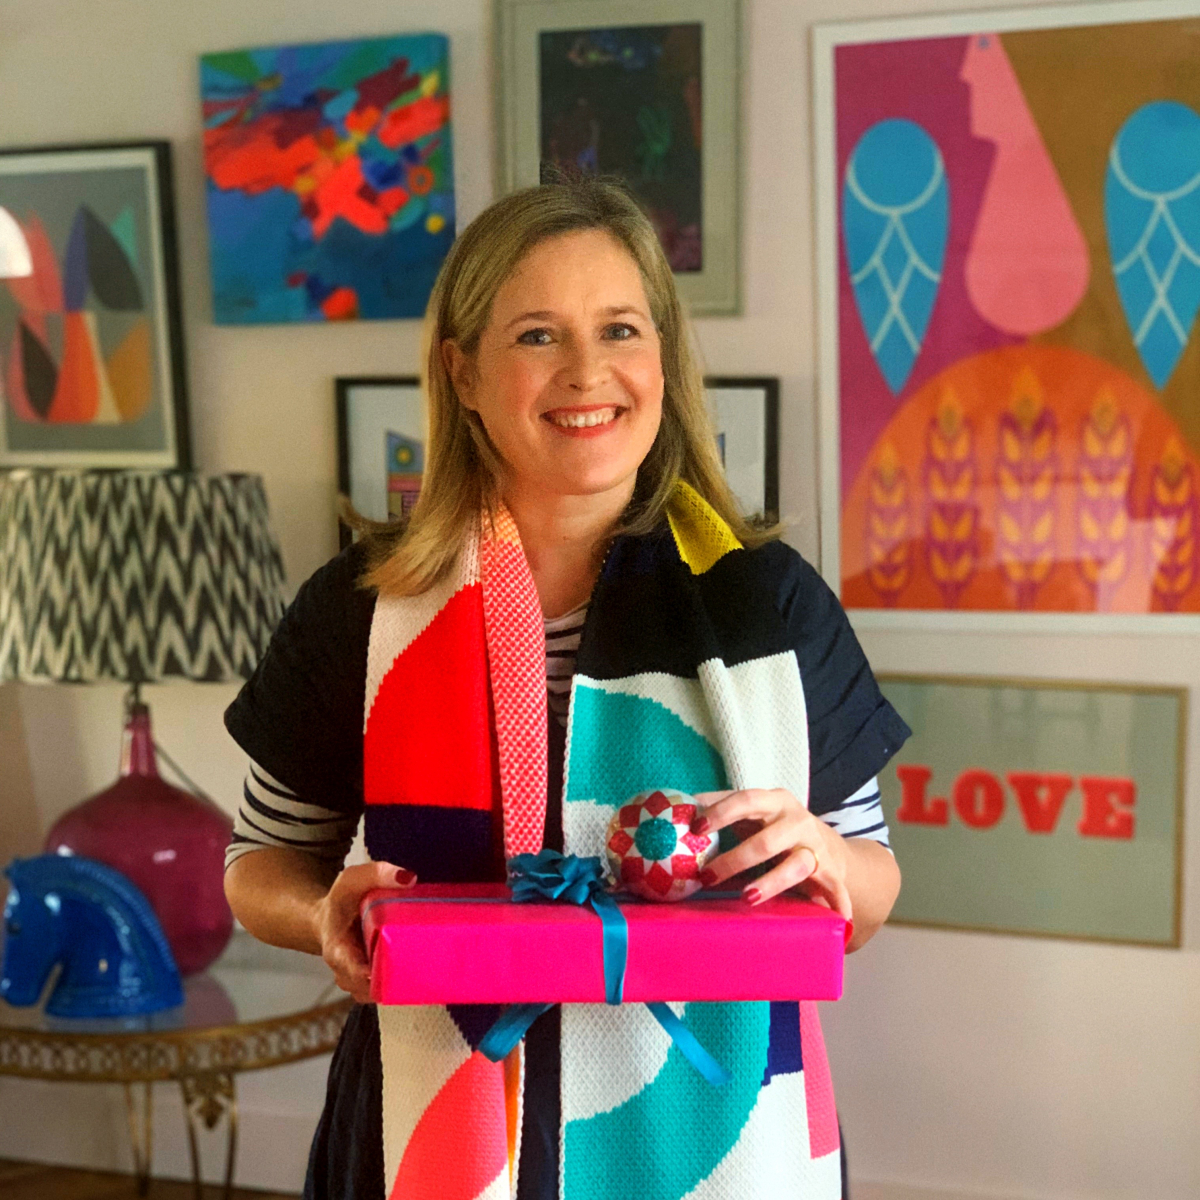 christmas gift guide for colour lovers is sophie robinsons hand picked gifts to brighten up this christmas with colour